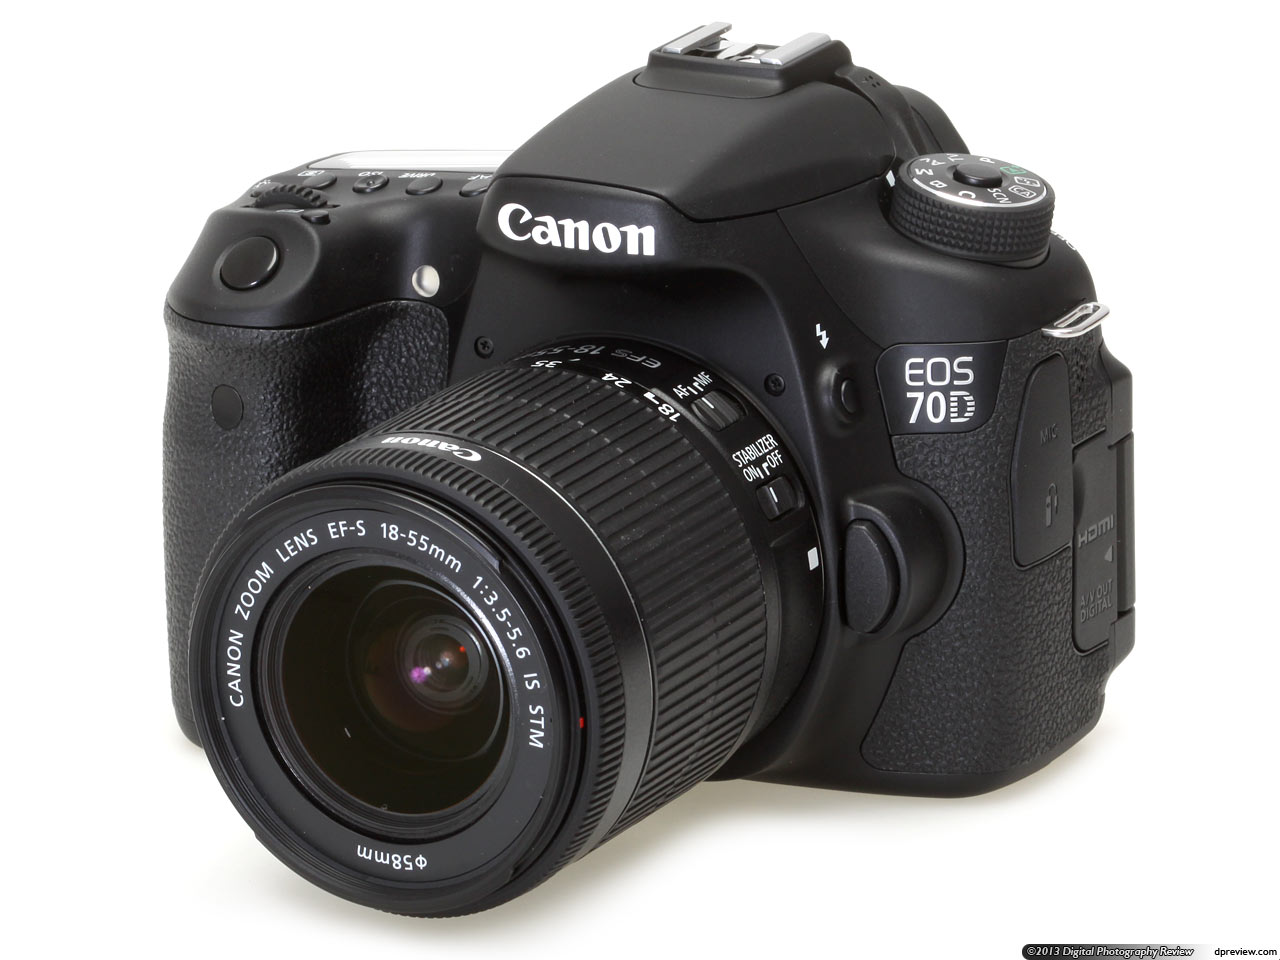 canon eos 70d review digital photography review. Black Bedroom Furniture Sets. Home Design Ideas